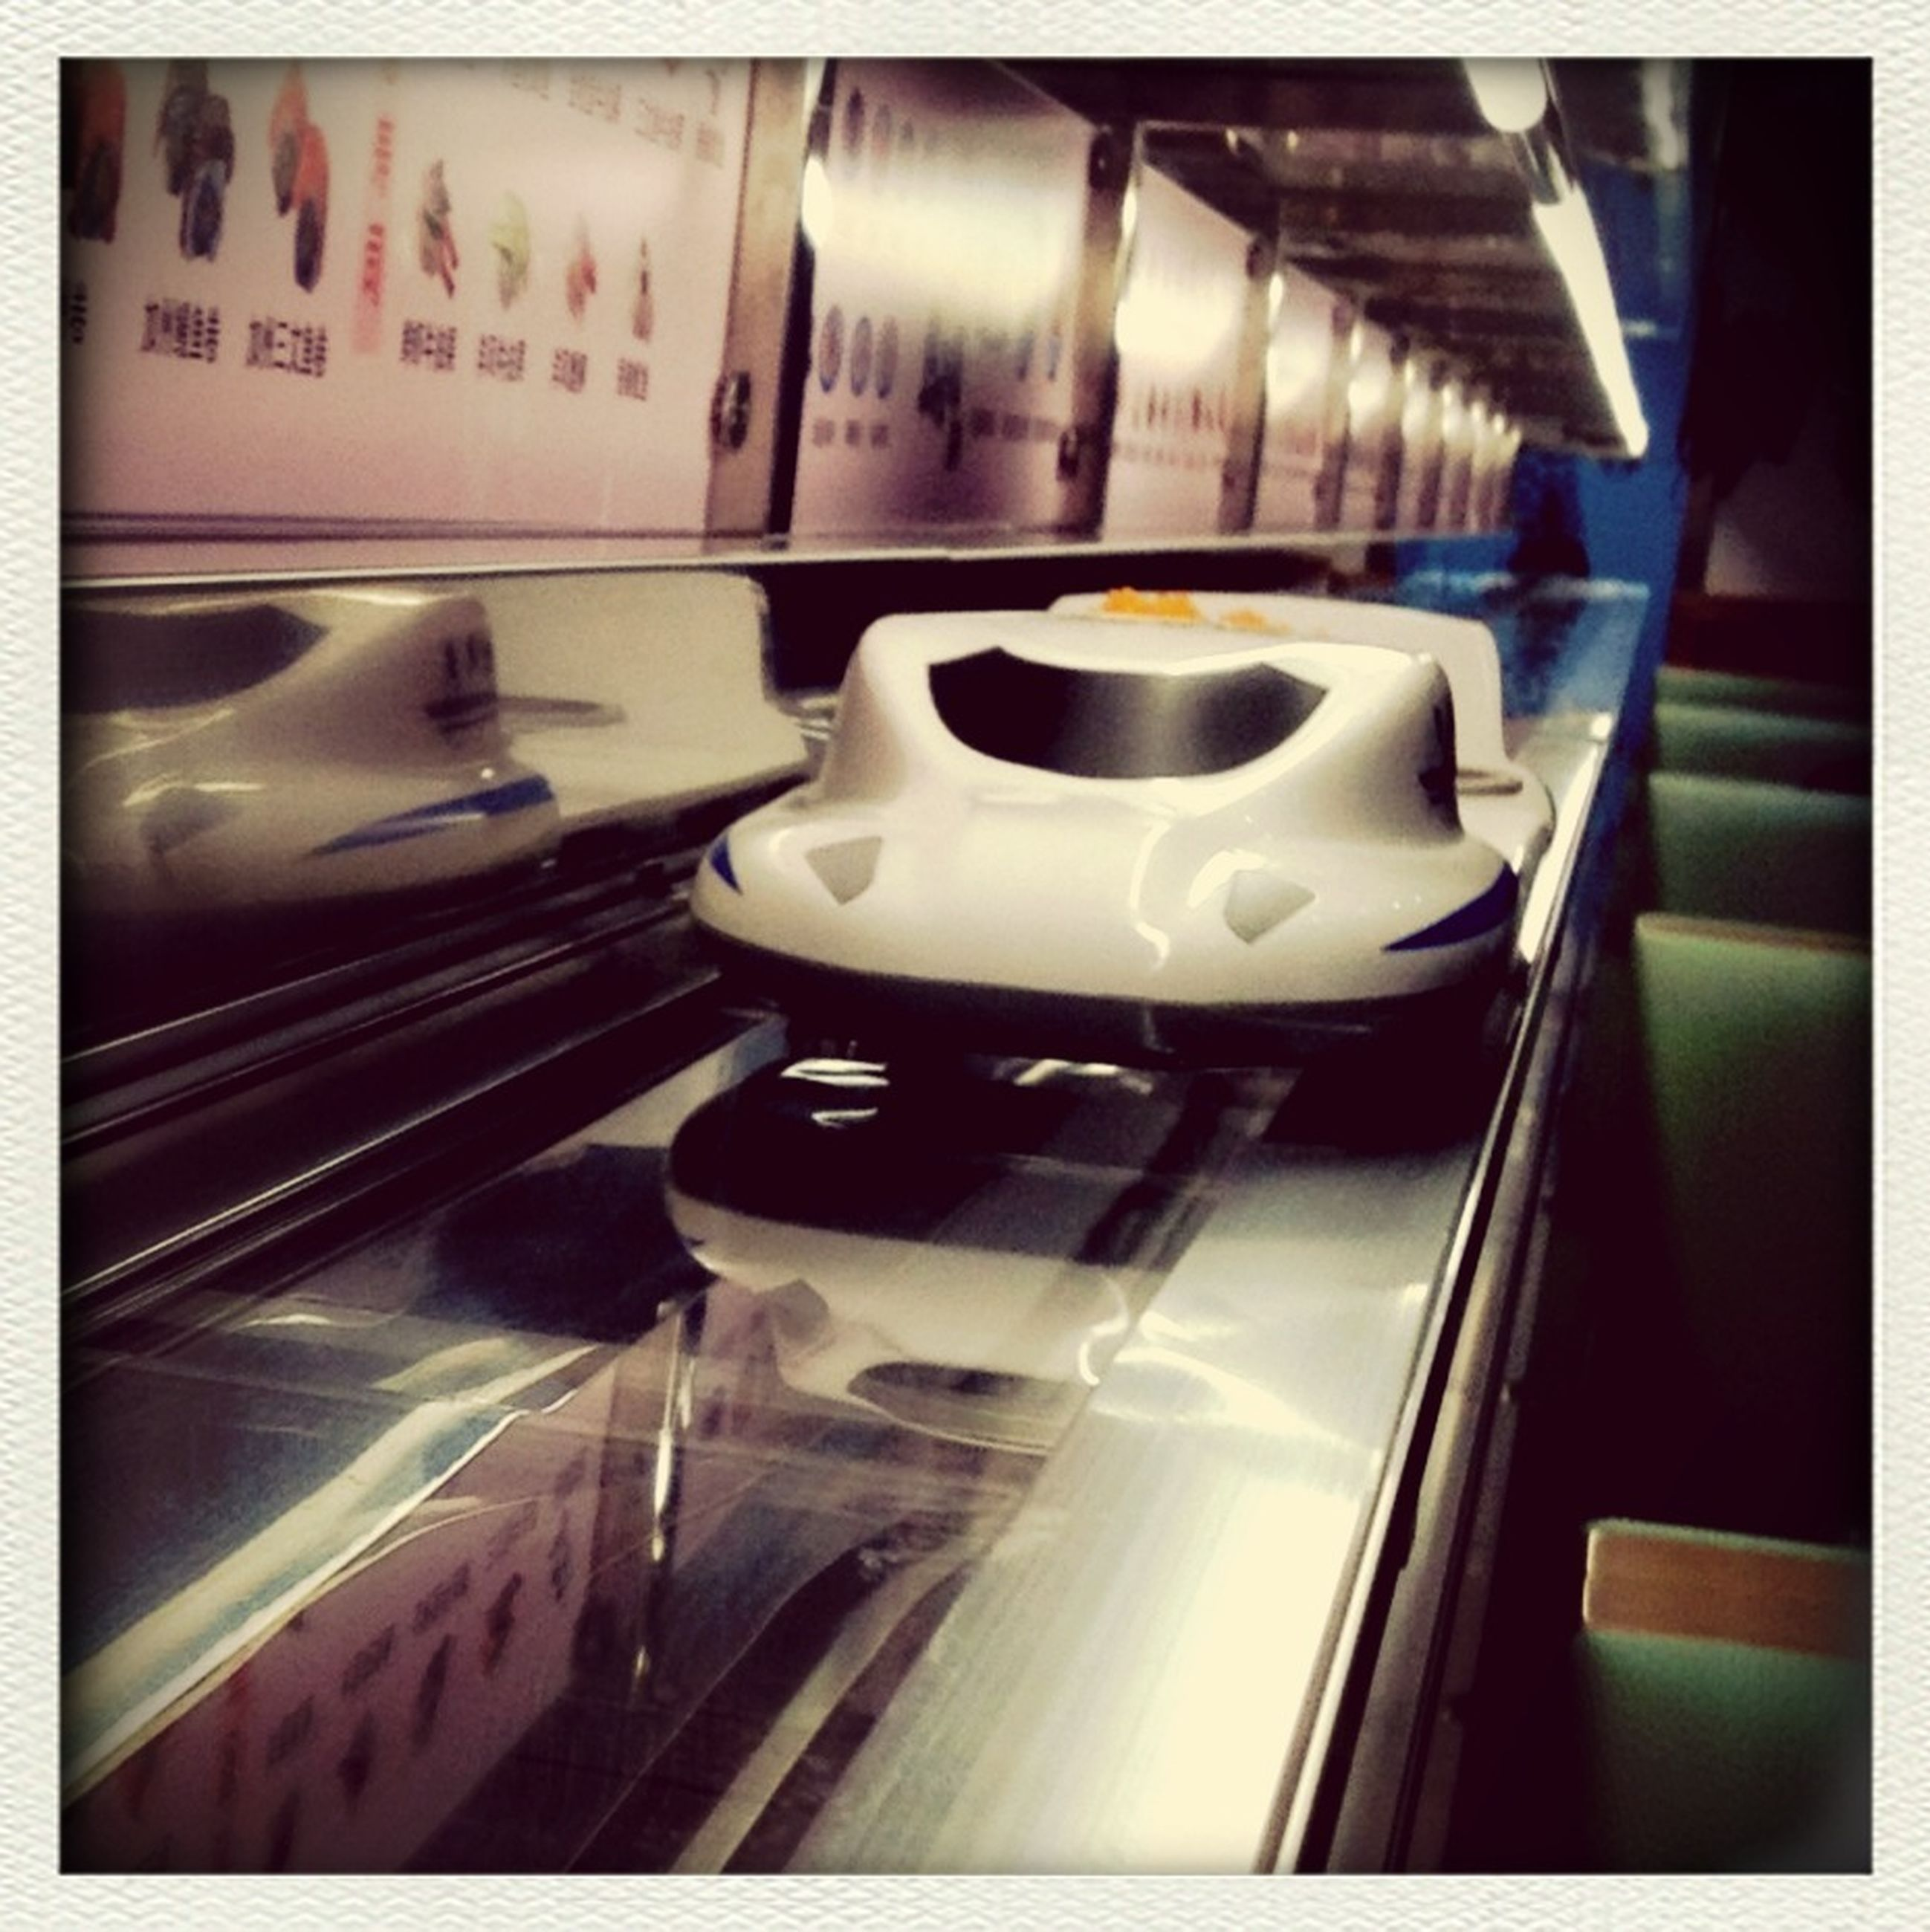 transportation, transfer print, auto post production filter, mode of transport, indoors, window, road, travel, on the move, land vehicle, journey, subway station, modern, metro train, no people